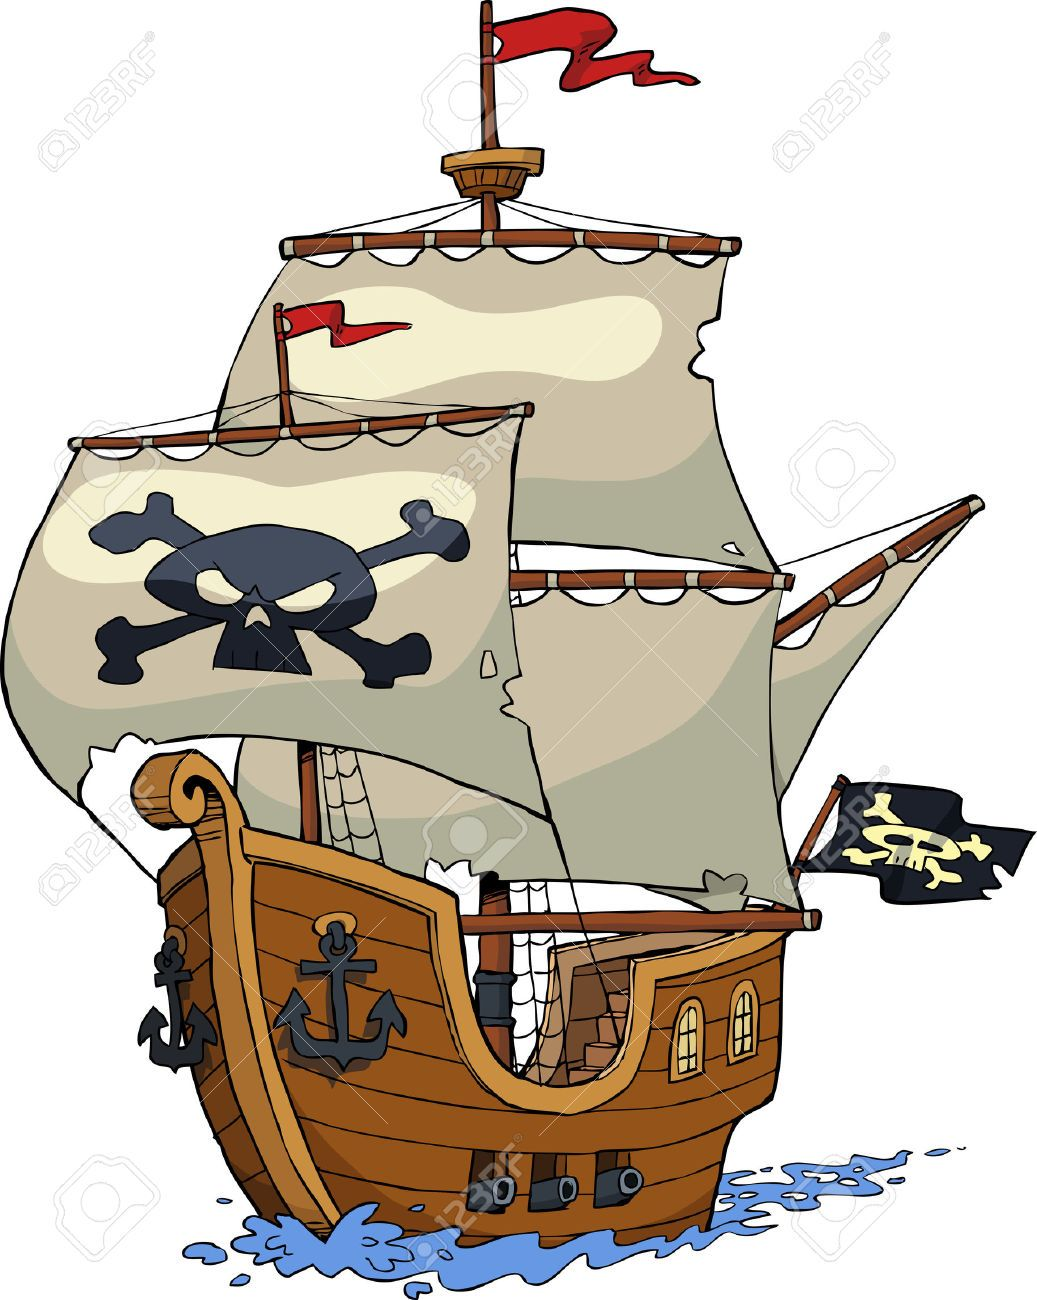 Cartoon sailing ship clipart graphic free download Image result for pirate ship cartoon background | ship concept ... graphic free download